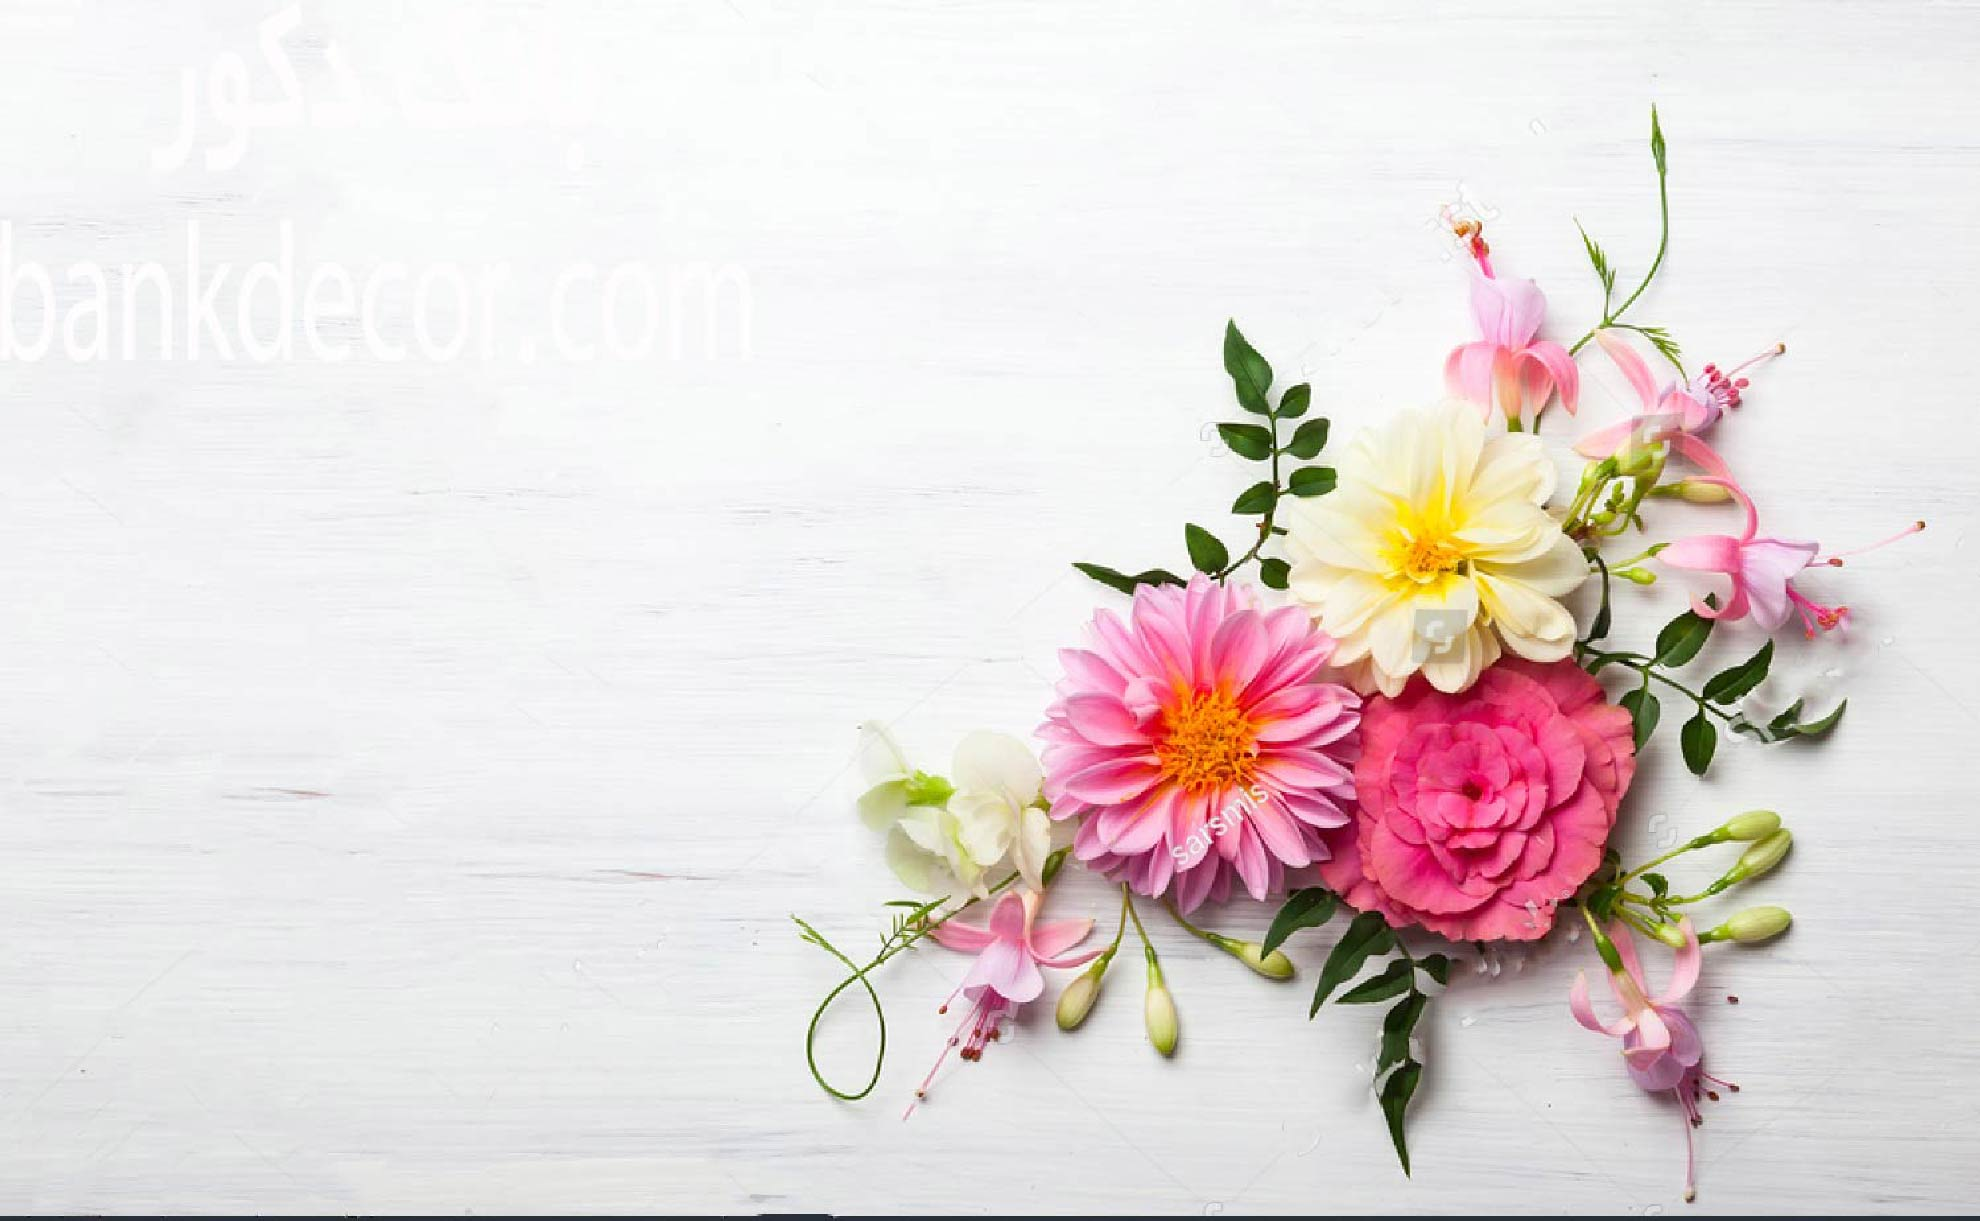 stock-photo-festive-flower-composition-on-the-white-wooden-background-overhead-view-644666317.jpg